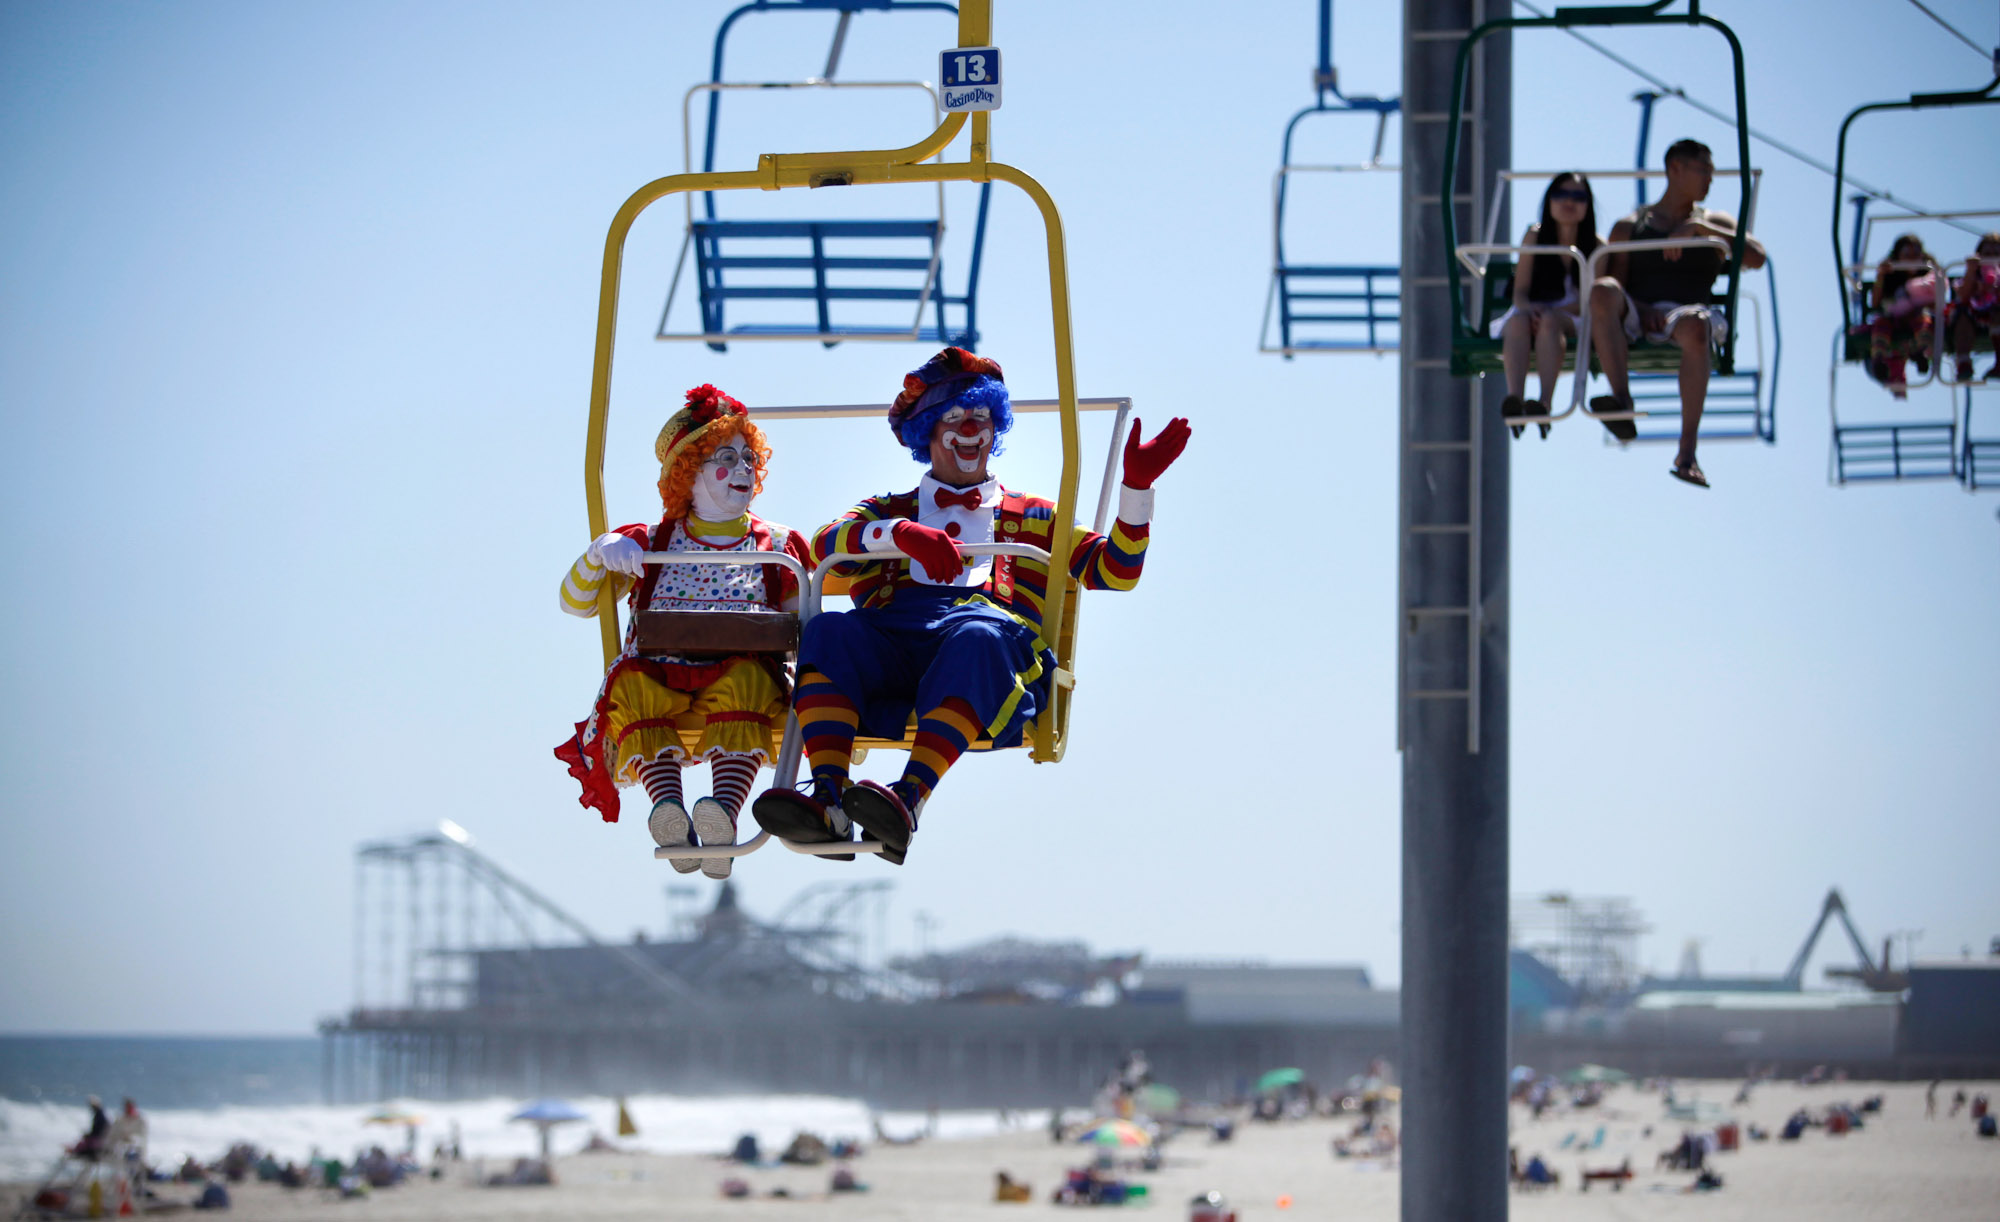 {quote}Fluffy{quote}, Laverne Fox (left) and {quote}Silly Willy{quote} Bob Krisby, both of Florida wave to onlookers from atop the Skyride along the Seaside Heights Boardwalk. Photographed for The Star-Ledger